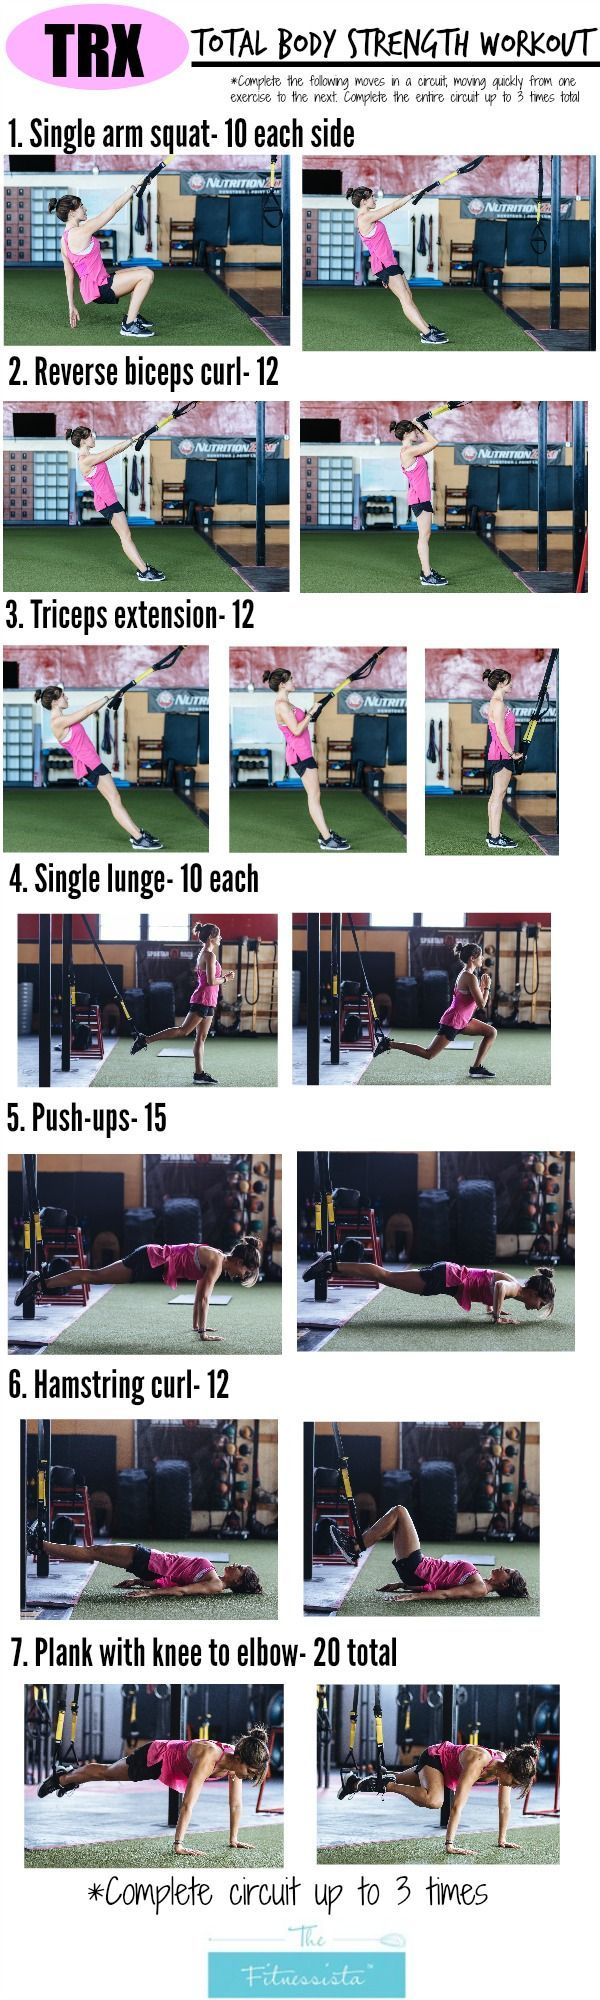 Work Your Entire Body With This TRX Circuit Routine   TRX ...